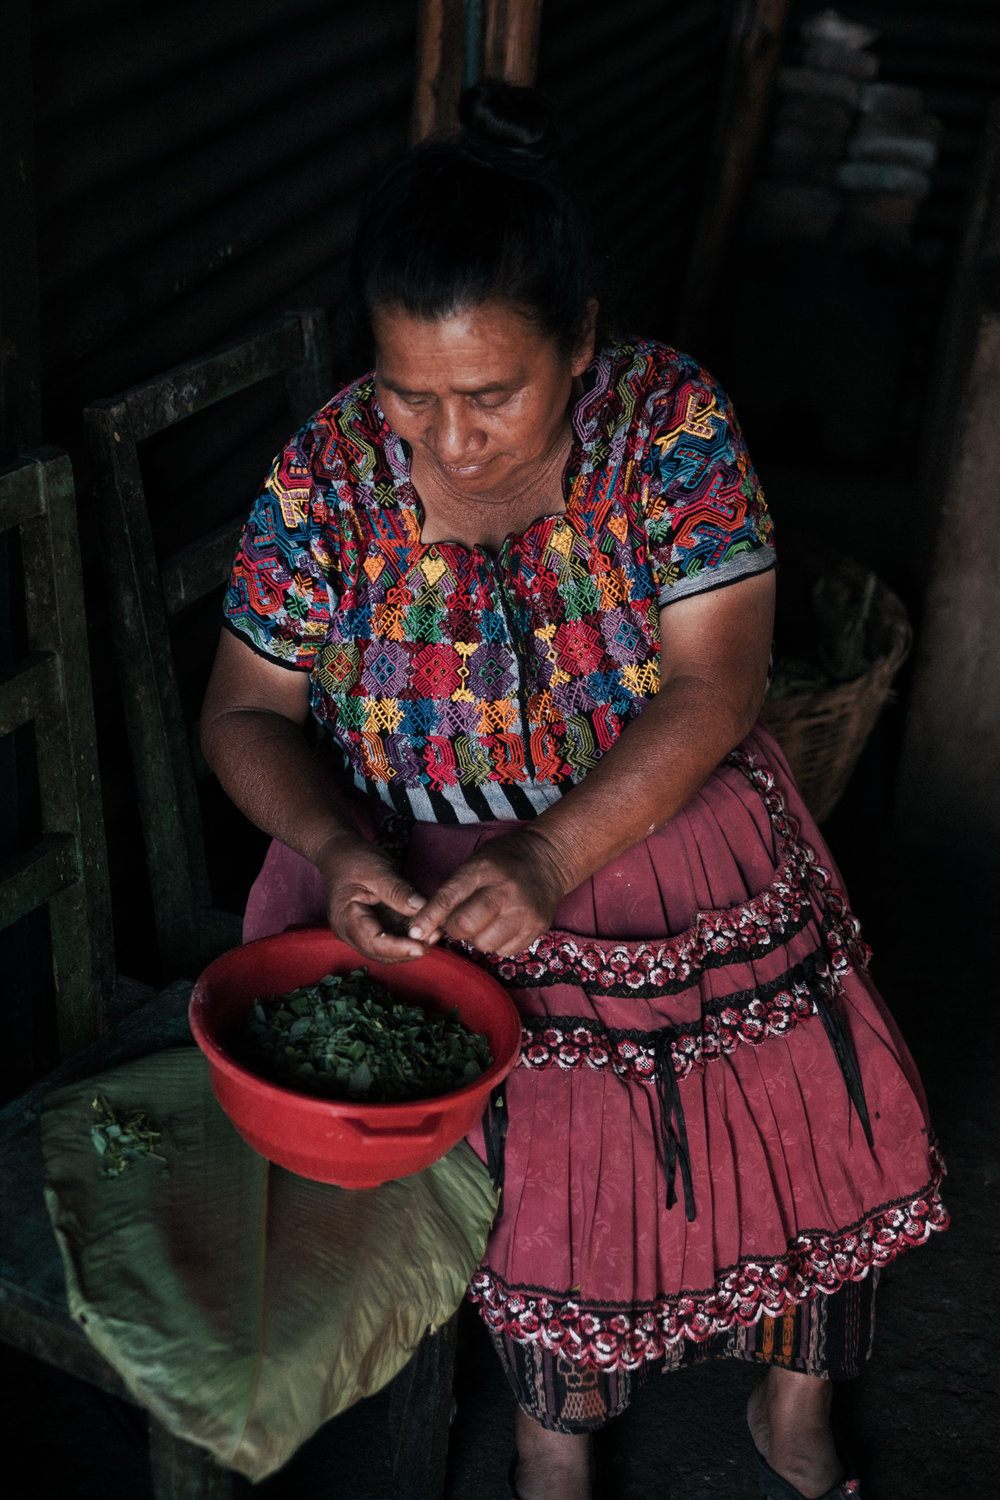 Doña Adela cleaning the chipilín for the tamalitos.